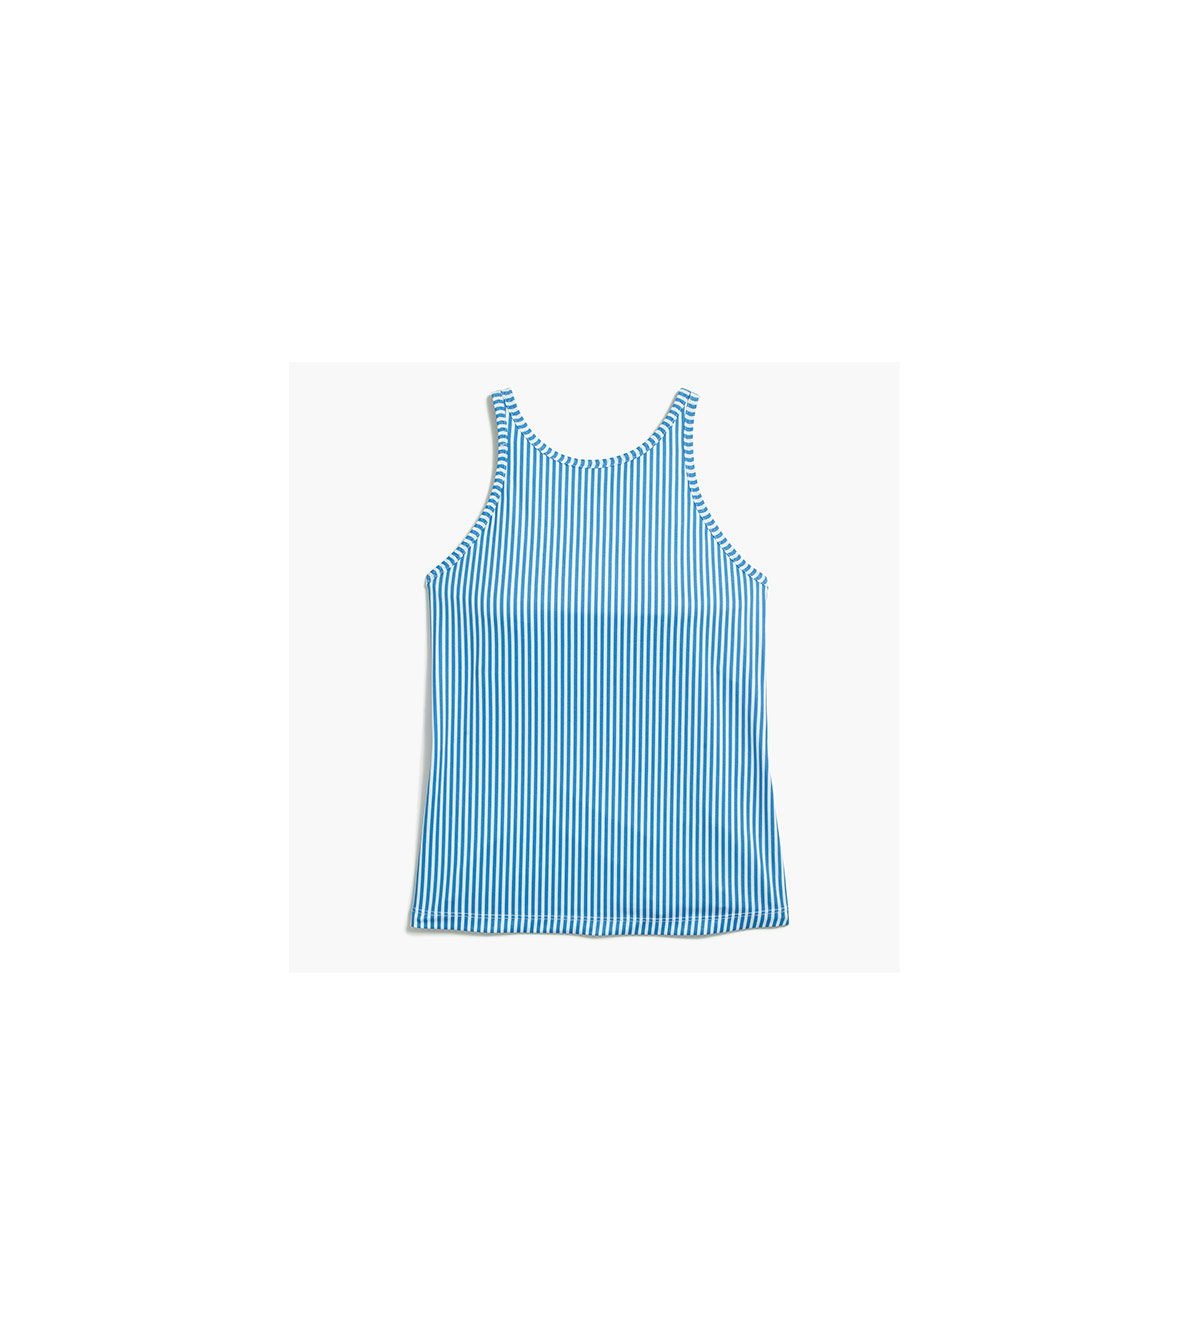 Striped Racerback Tank Top With Built-in Sports Bra